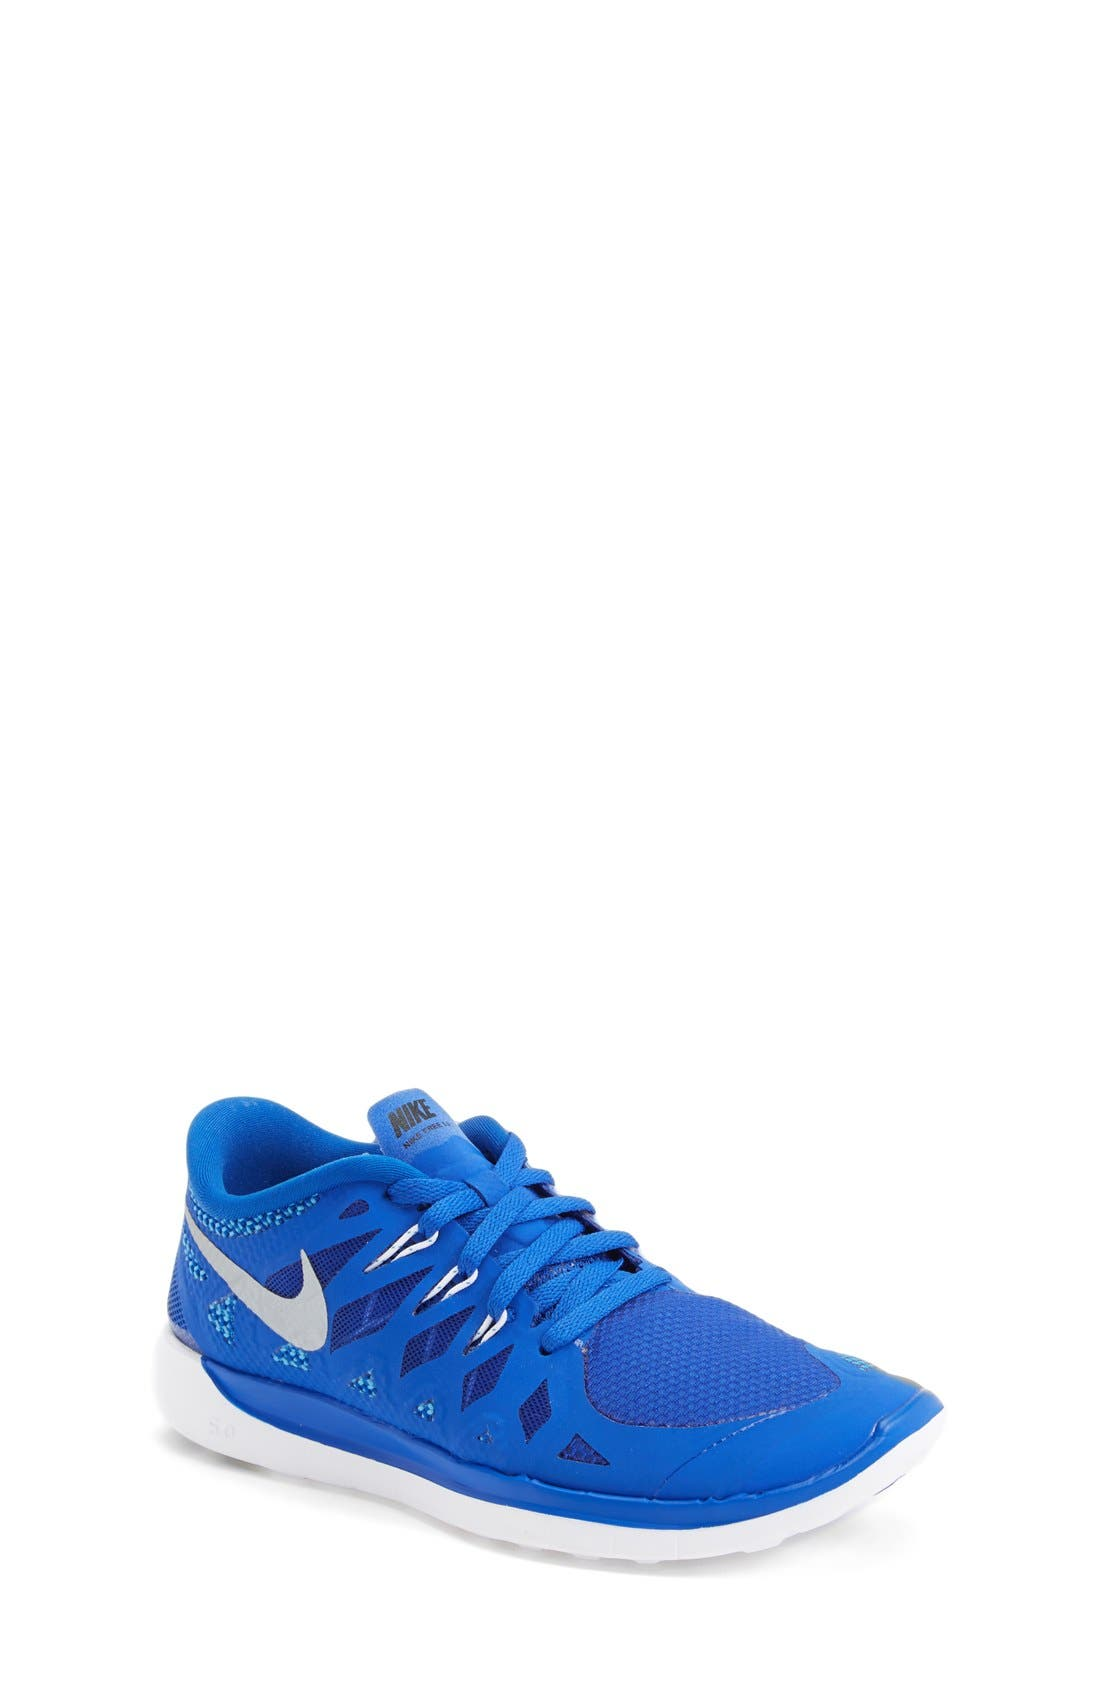 Alternate Image 1 Selected - Nike 'Free 5.0' Running Shoe (Big Kids)